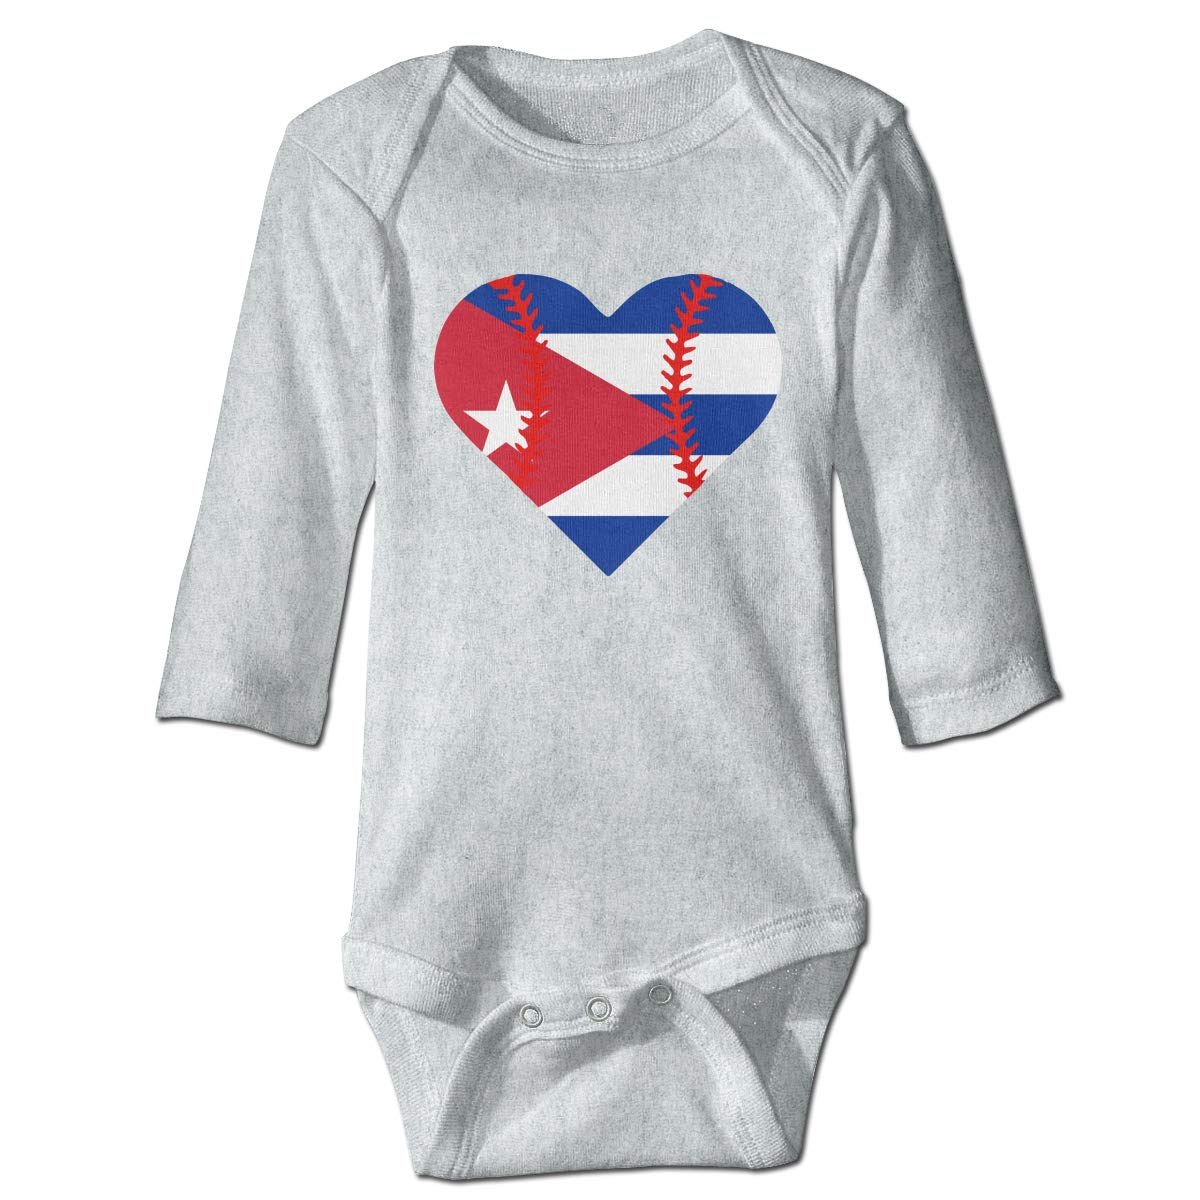 A14UBP Infant Baby Girls Long Sleeve Baby Clothes Cuba Flag Baseball Heart Unisex Button Playsuit Outfit Clothes